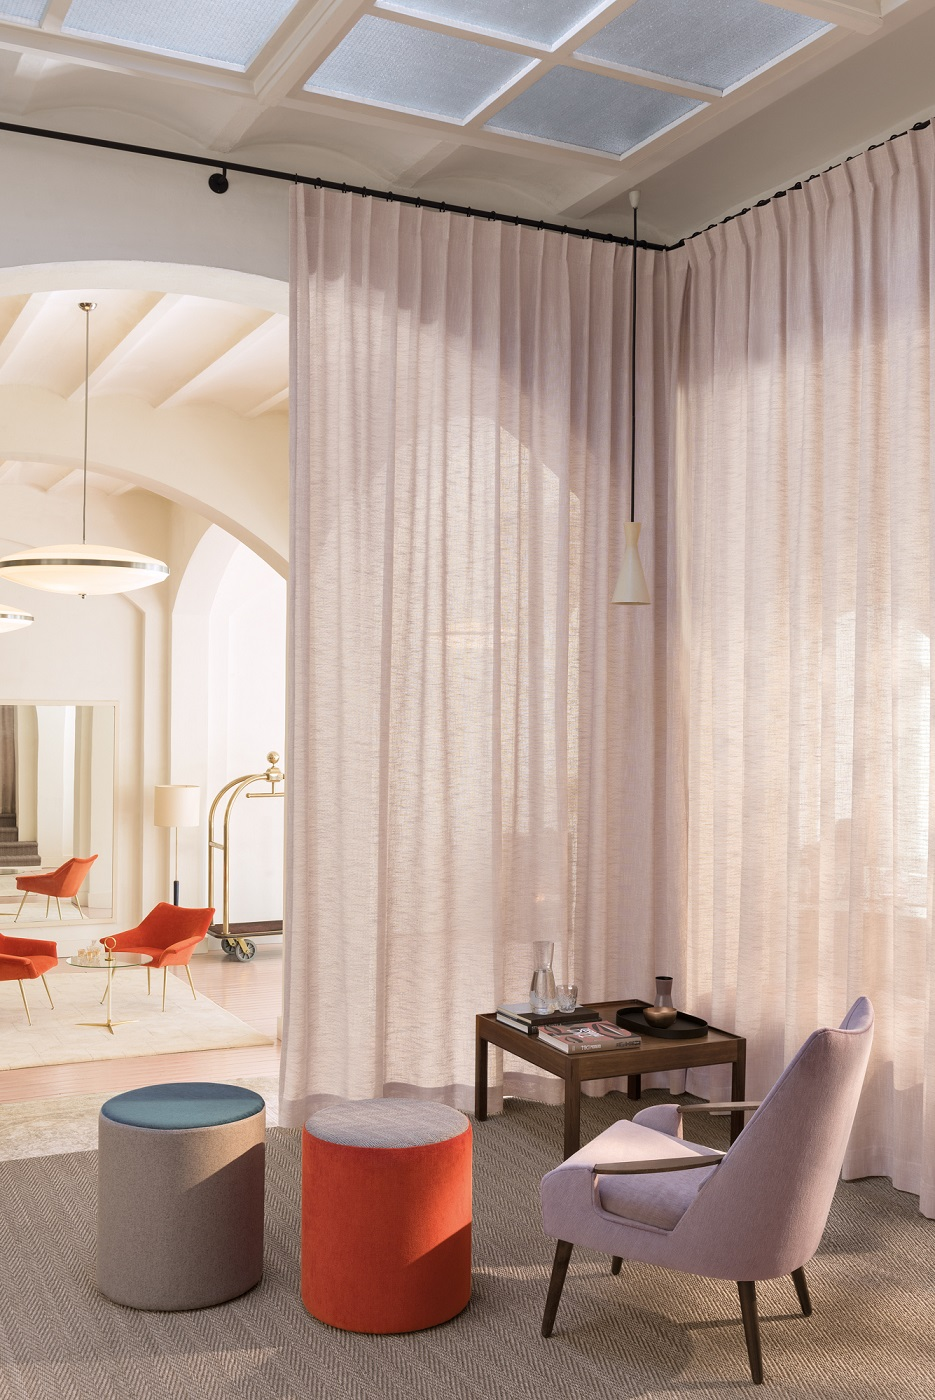 fr sheer curtains and an elegant armchair with poufs_lucence collection